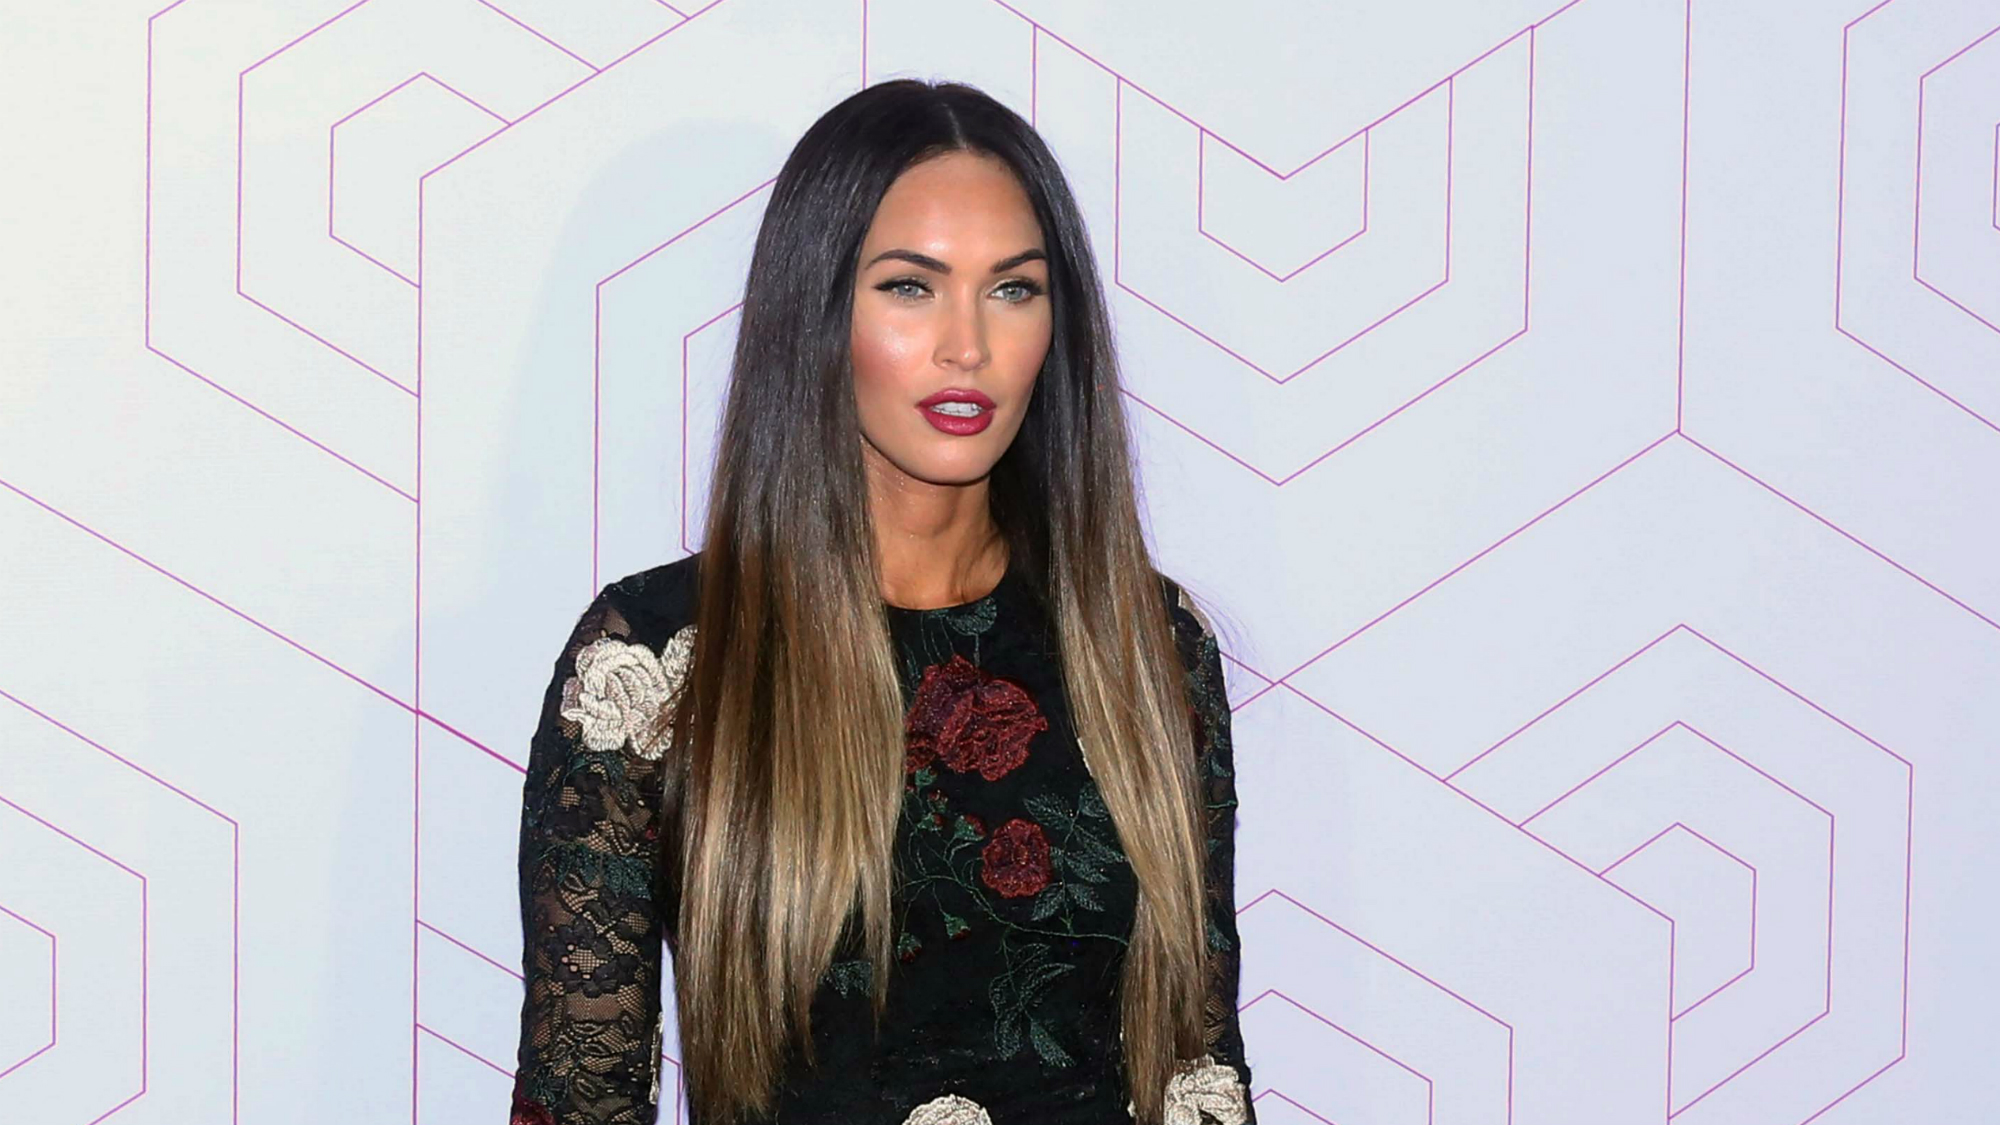 megan fox got fired and she's a millionaire film star